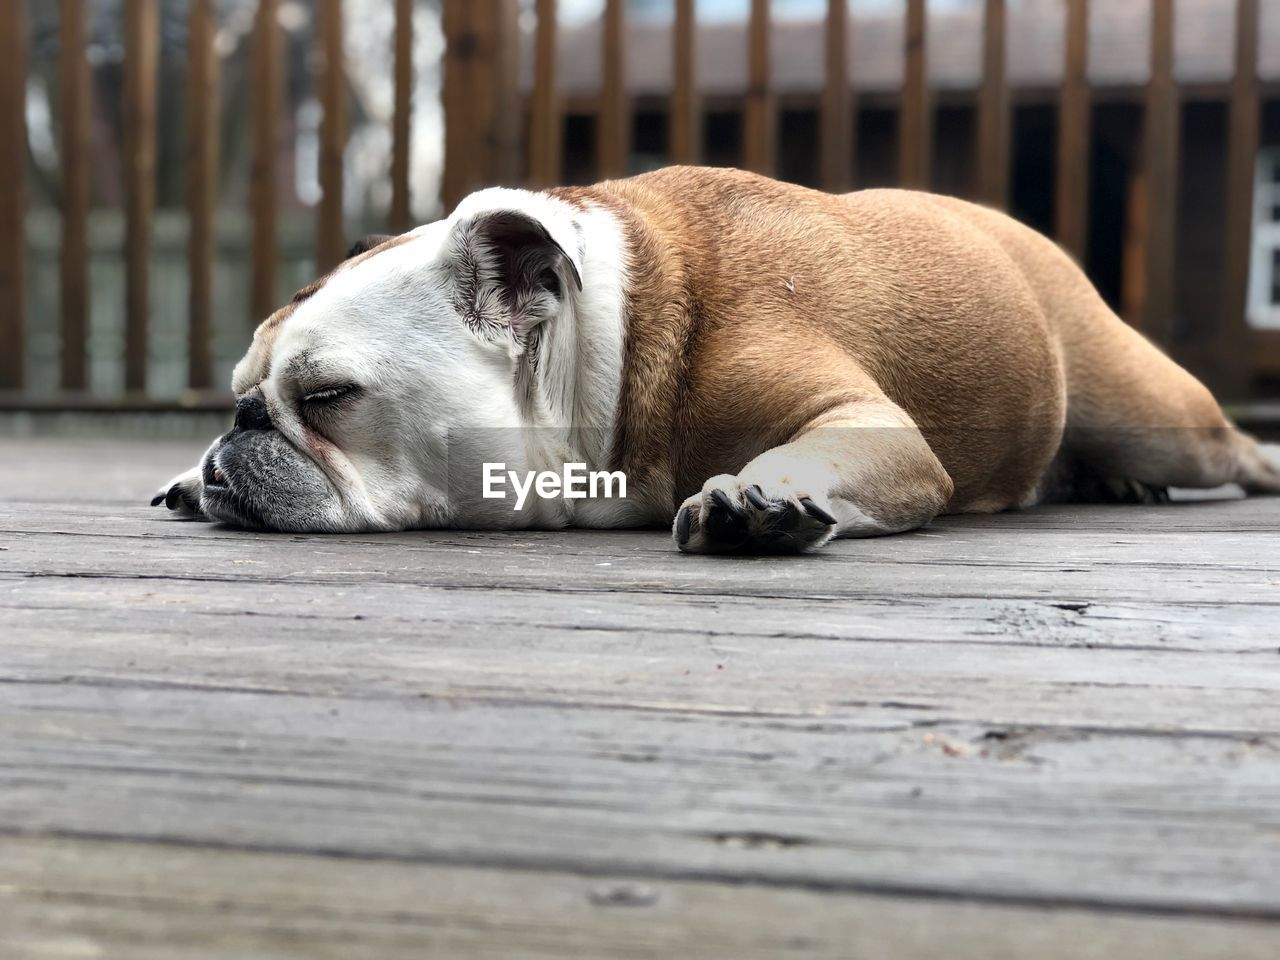 one animal, mammal, animal themes, animal, domestic, pets, domestic animals, relaxation, dog, canine, vertebrate, lying down, wood - material, resting, sleeping, no people, day, flooring, footpath, selective focus, animal head